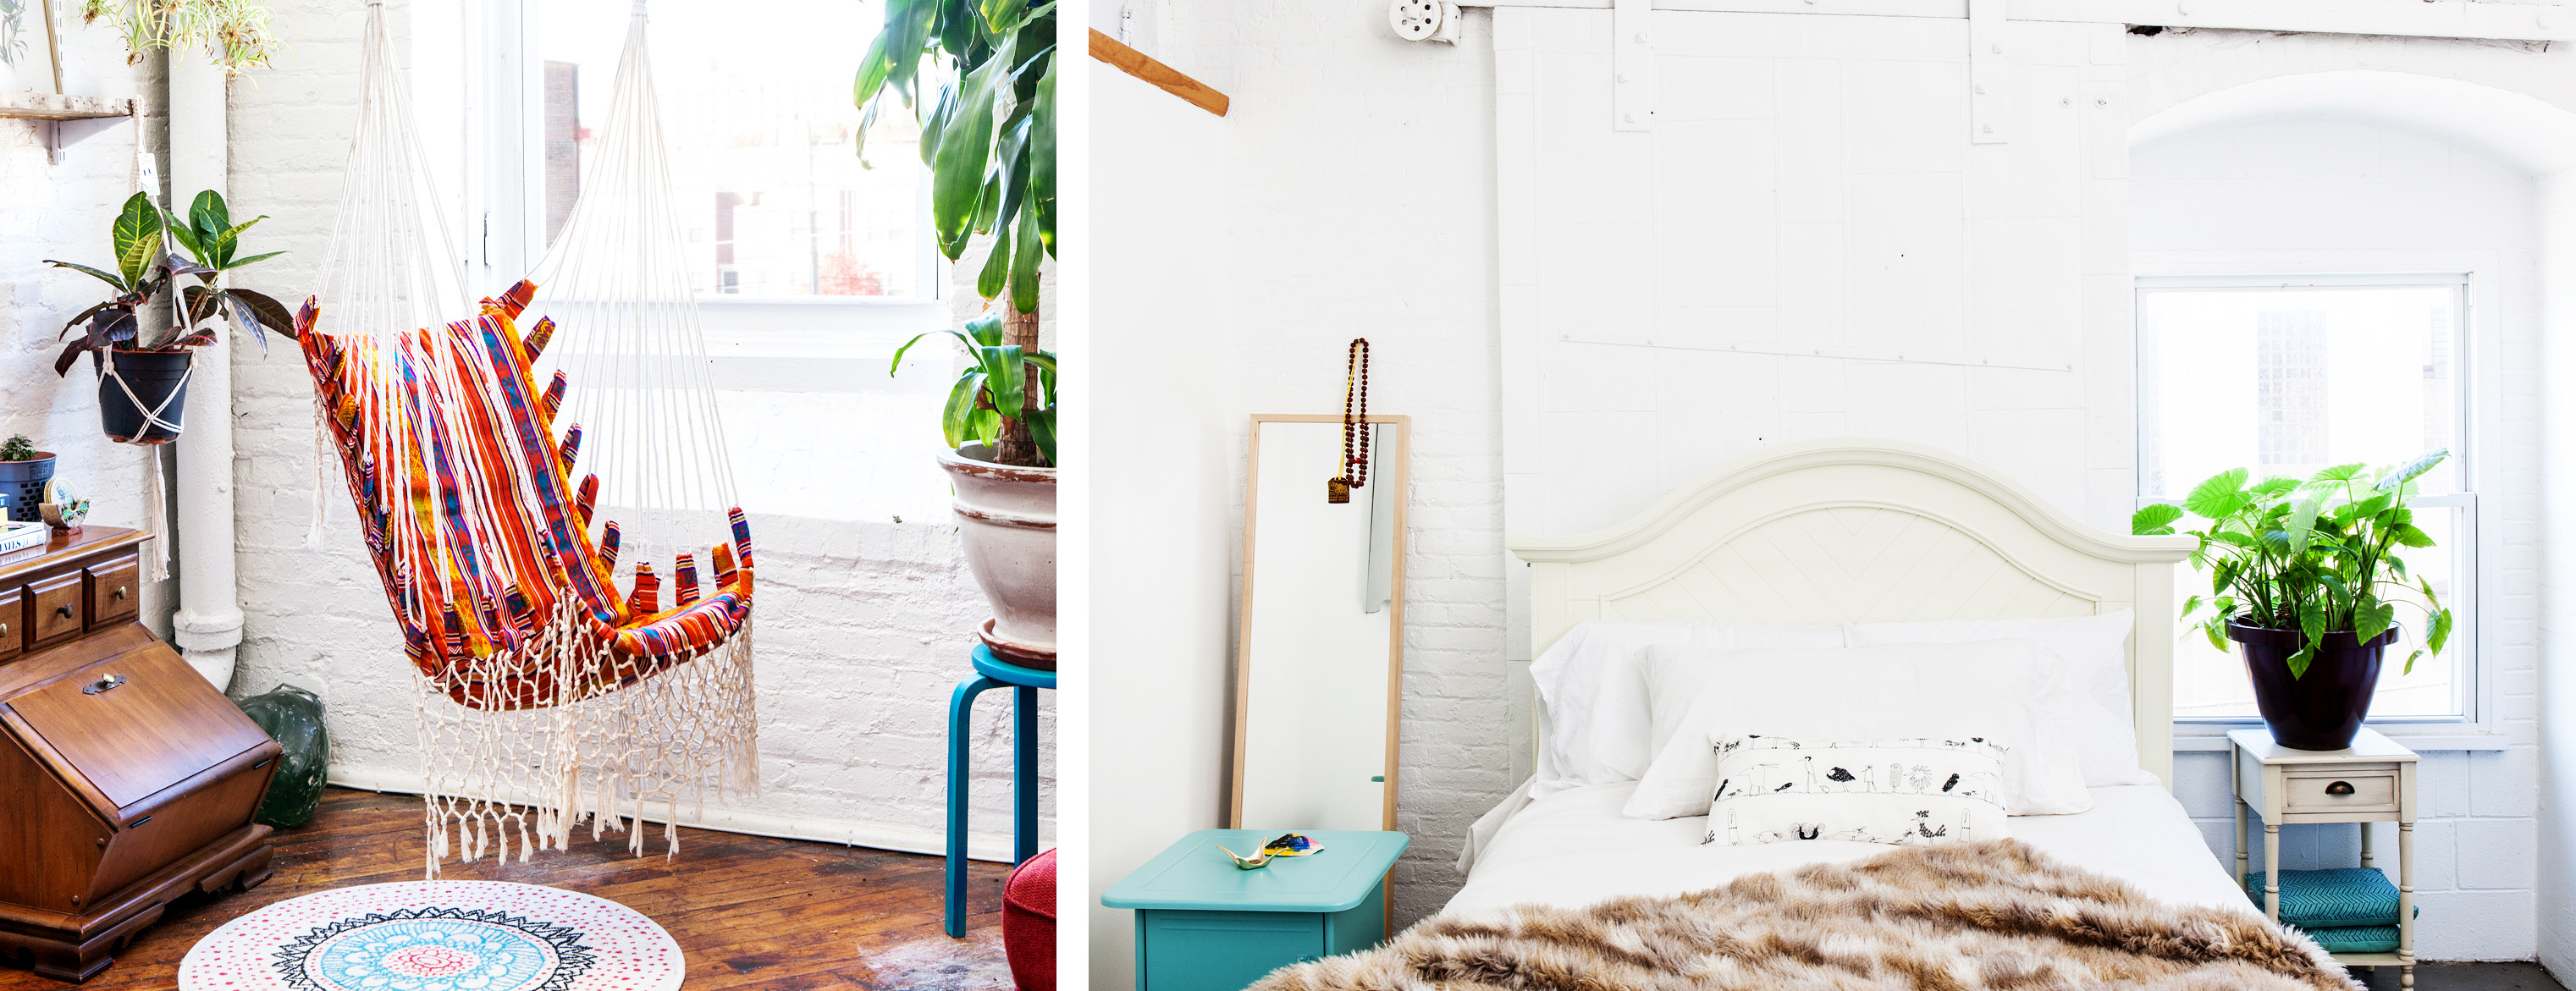 urban loft northern home furniture. blank slate becomes colorful urban jungle in northern liberties curbed philly loft home furniture u